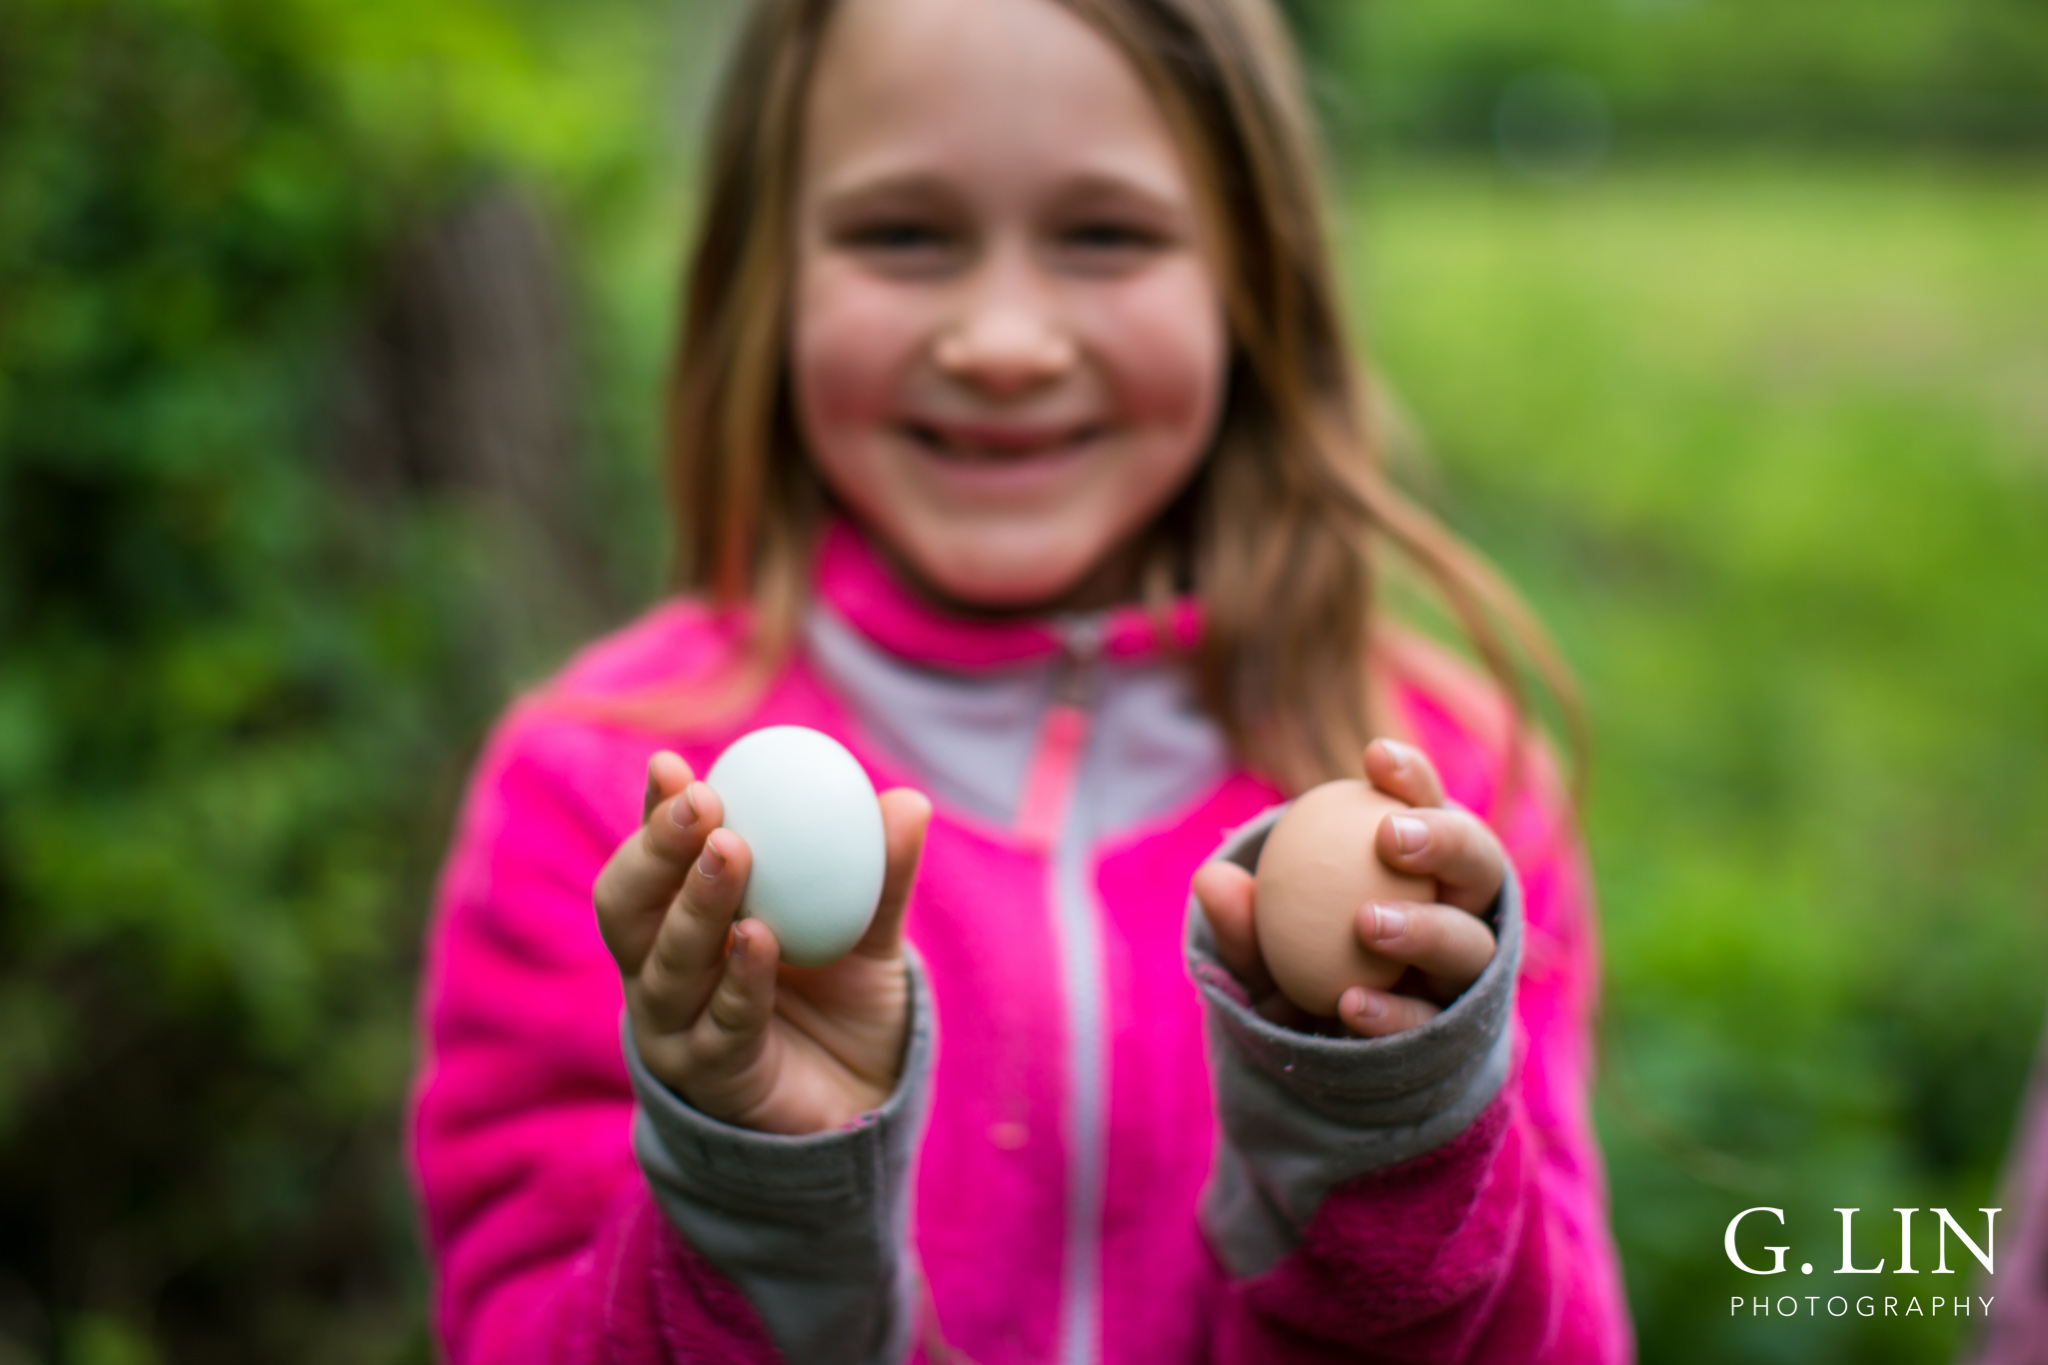 G. Lin Photography | Raleigh Event Photographer | Girl holding two eggs on farm